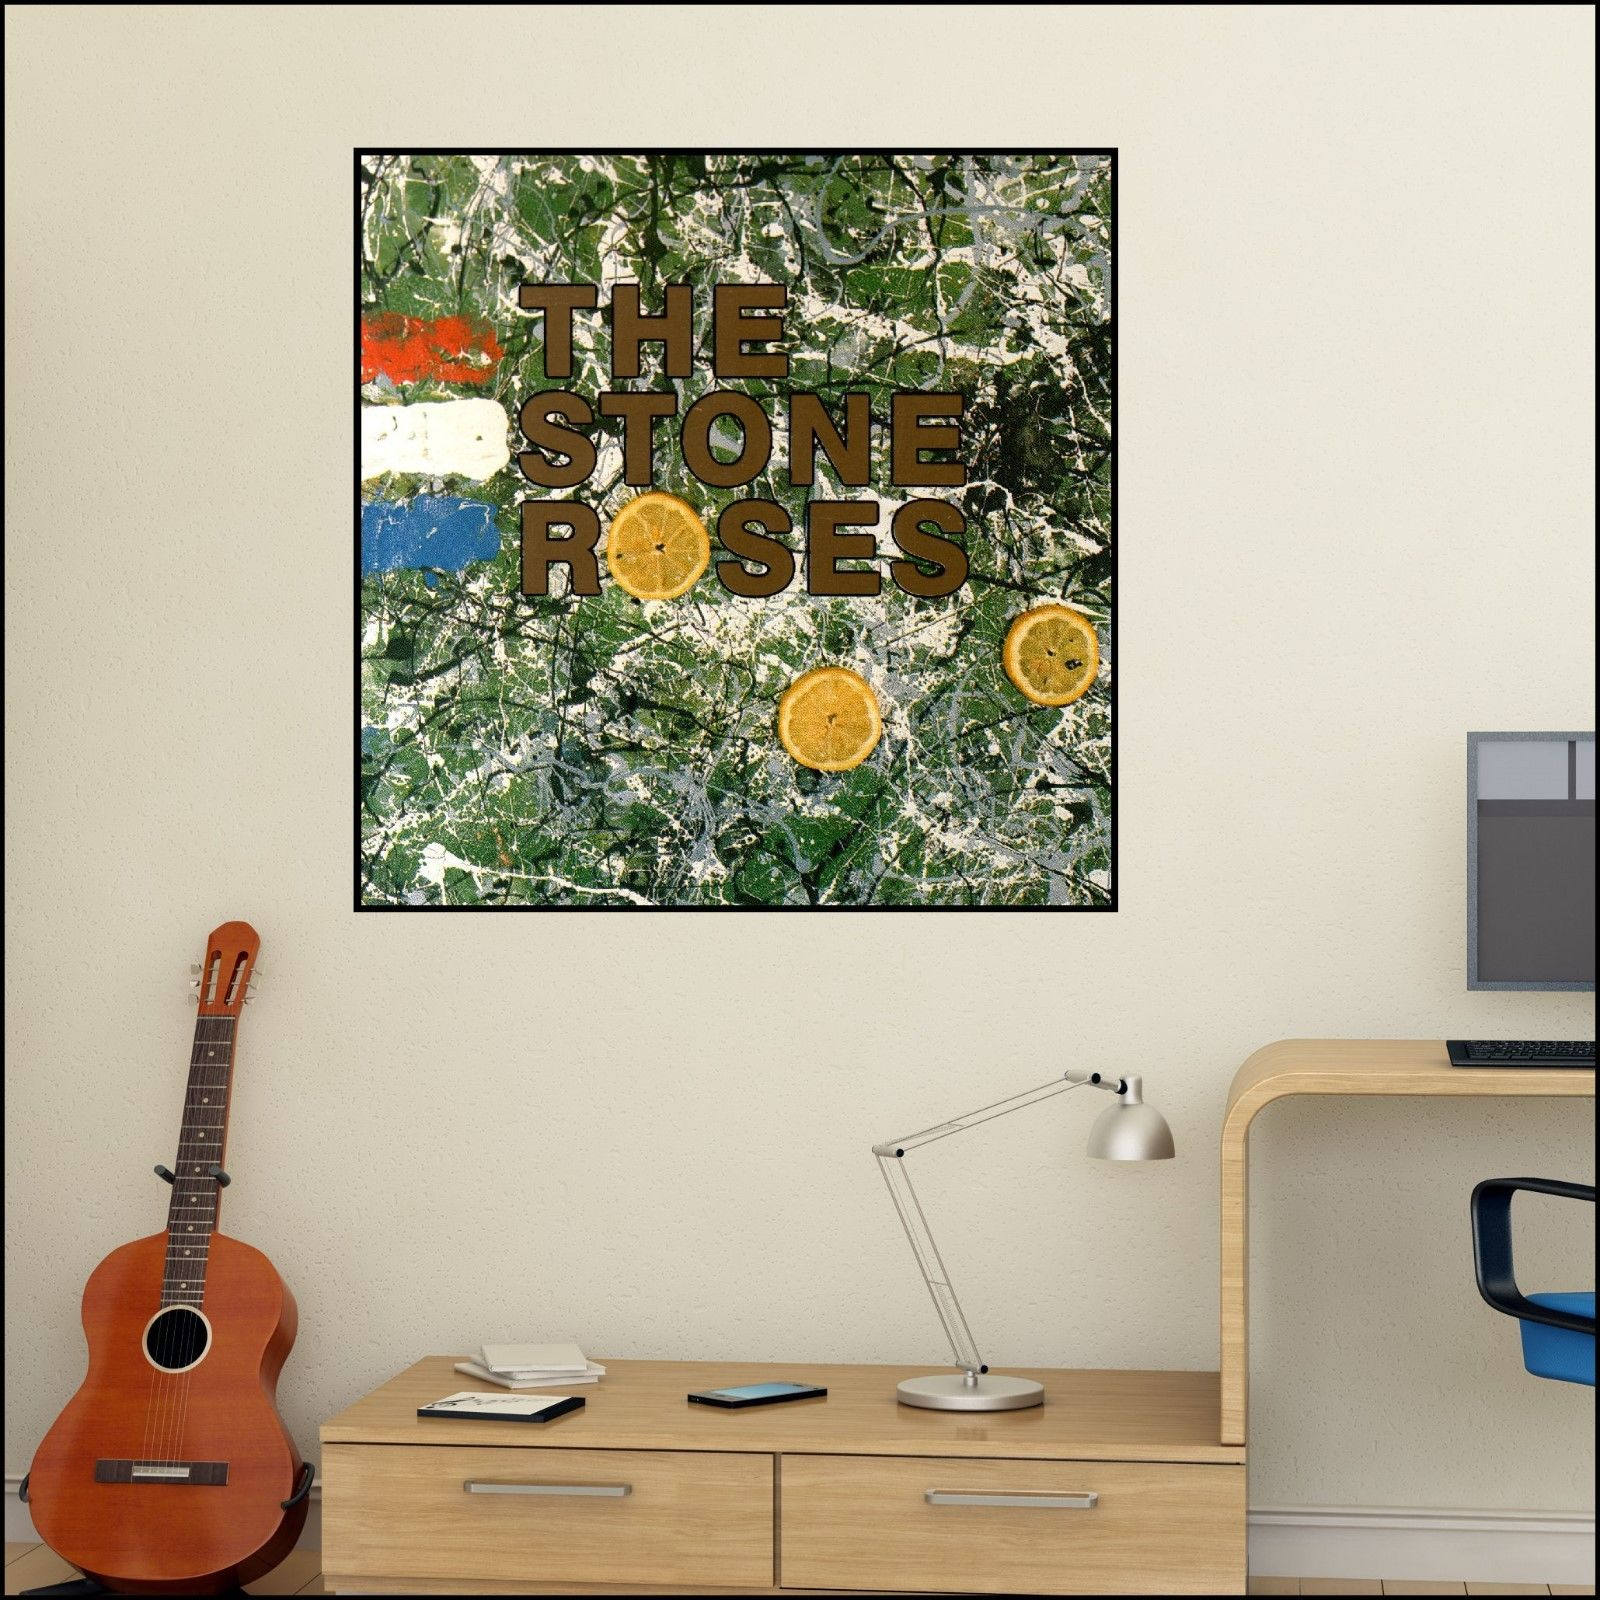 The Stone Roses Album Cover Art Wall Sticker 6 Size Xl 1 2m Unique Gift Man Cave Bespoke Graphics